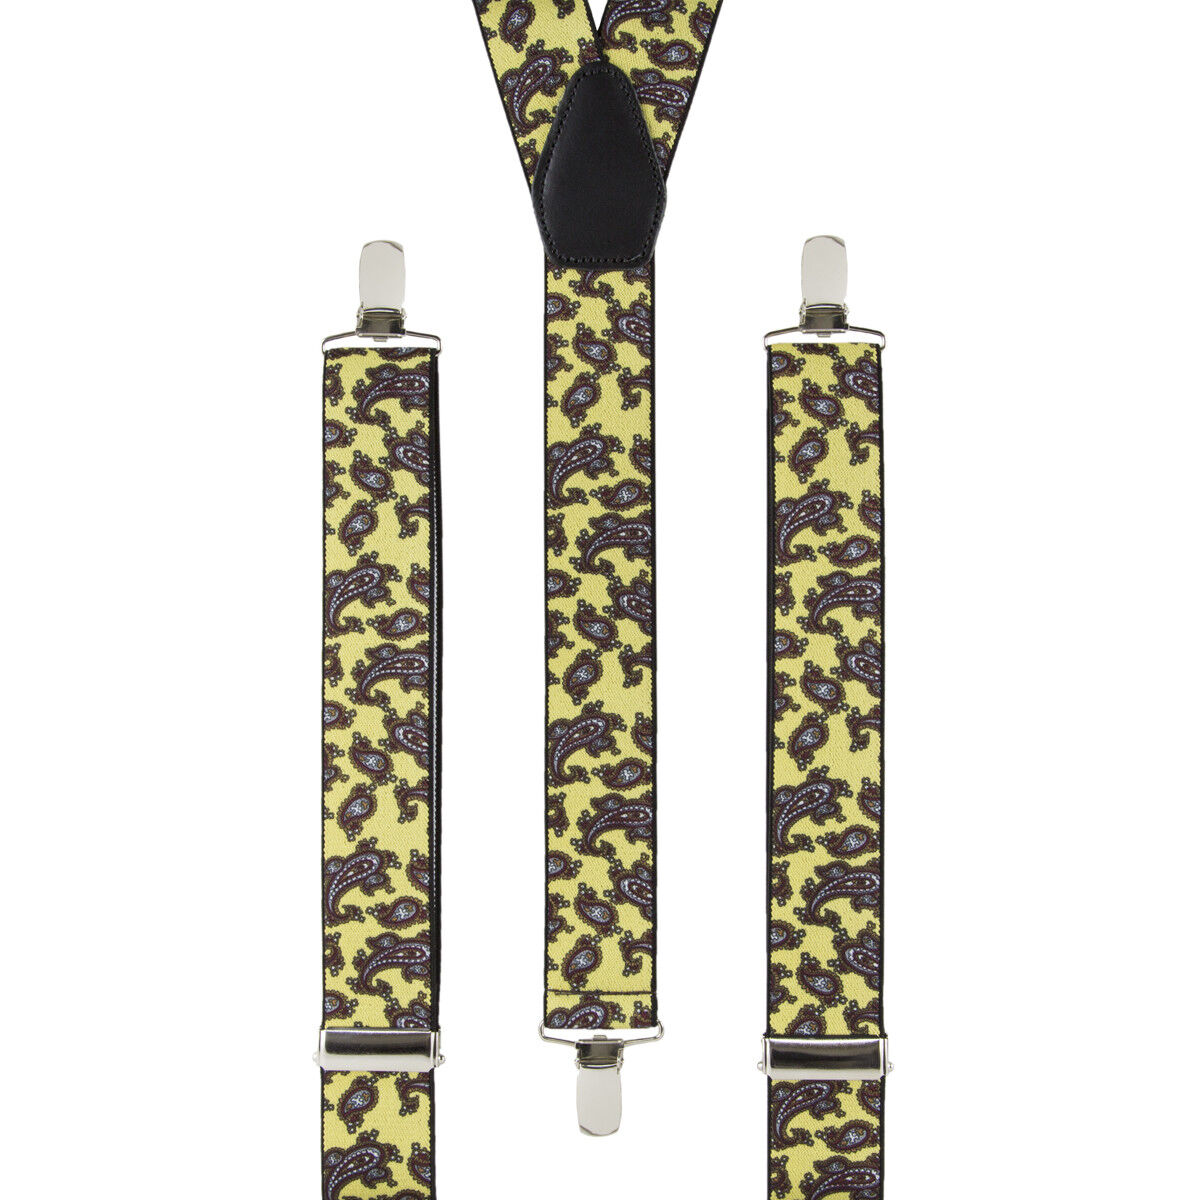 Mens Paisley Braces Yellow Clip On Elastic Suspenders Leather Kite Made in UK